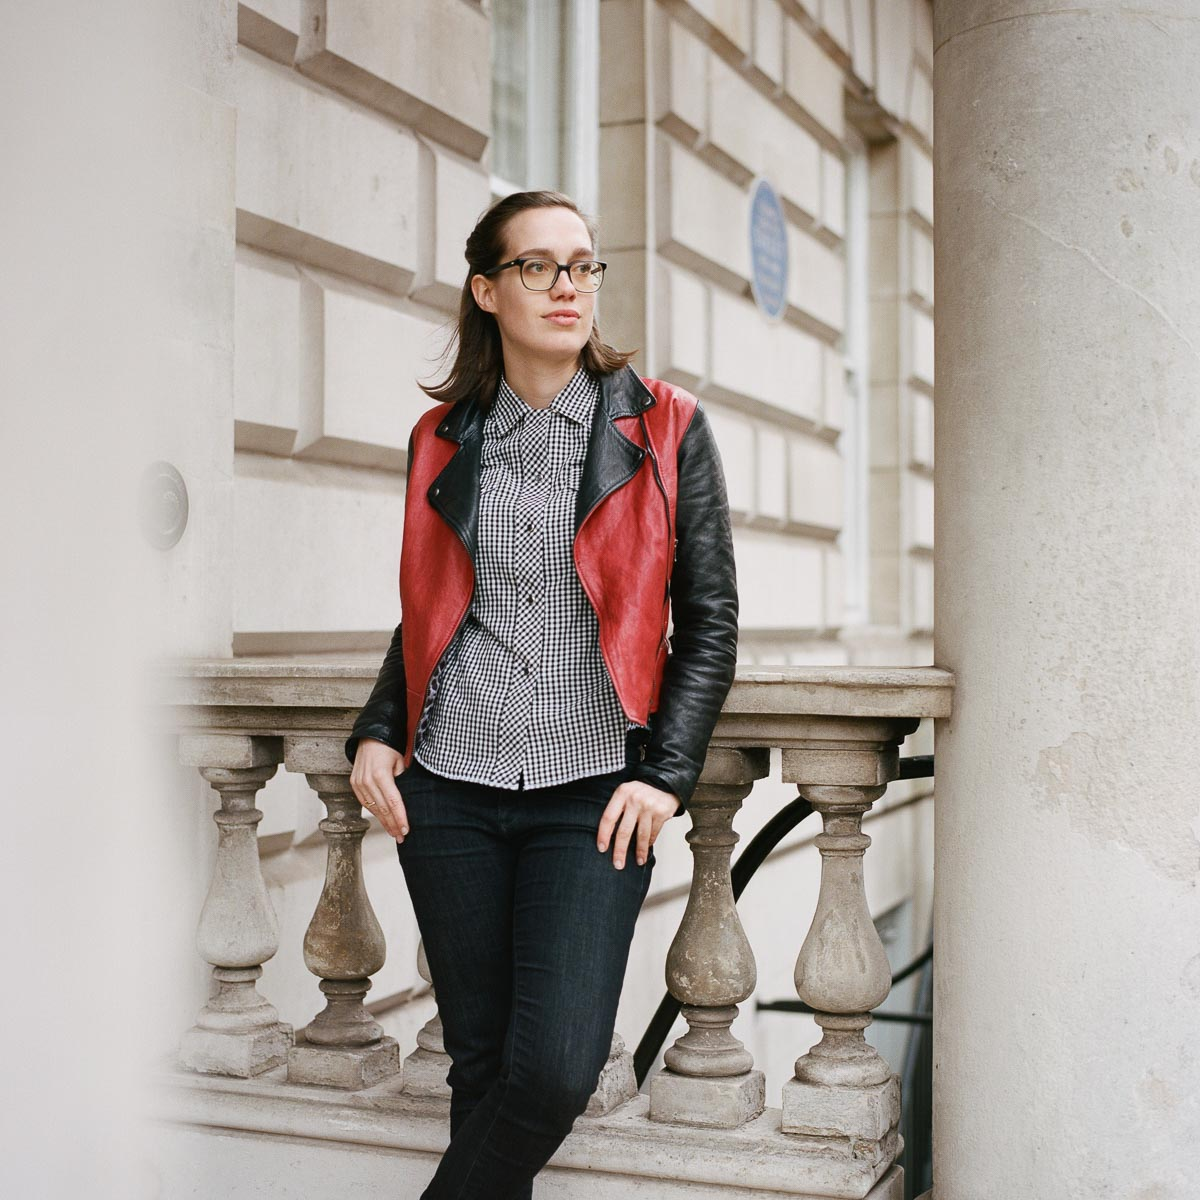 Julian-Love-Portrait-Photographer-London-23